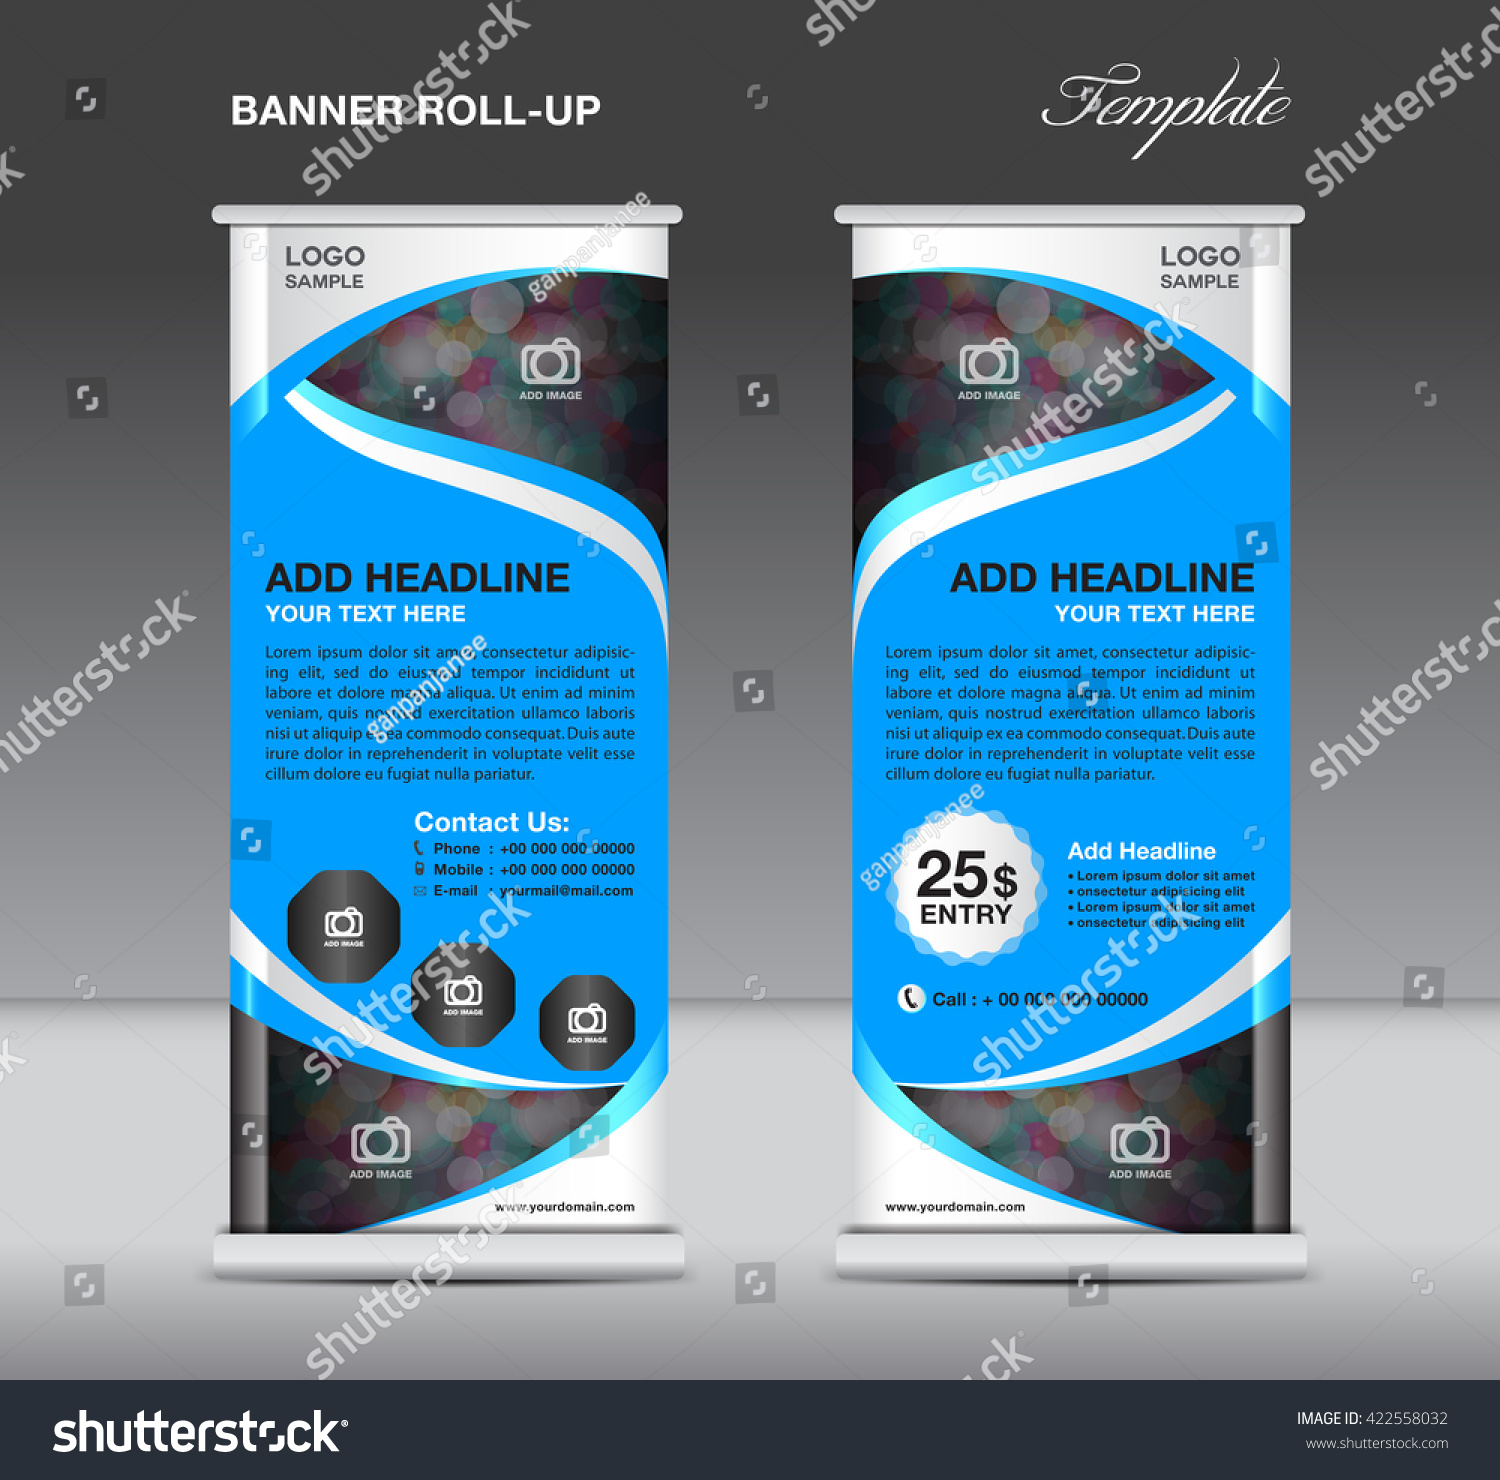 roll banner stand template advertisement flyer stock vector roll up banner stand template advertisement flyer vector illustration trade design poster